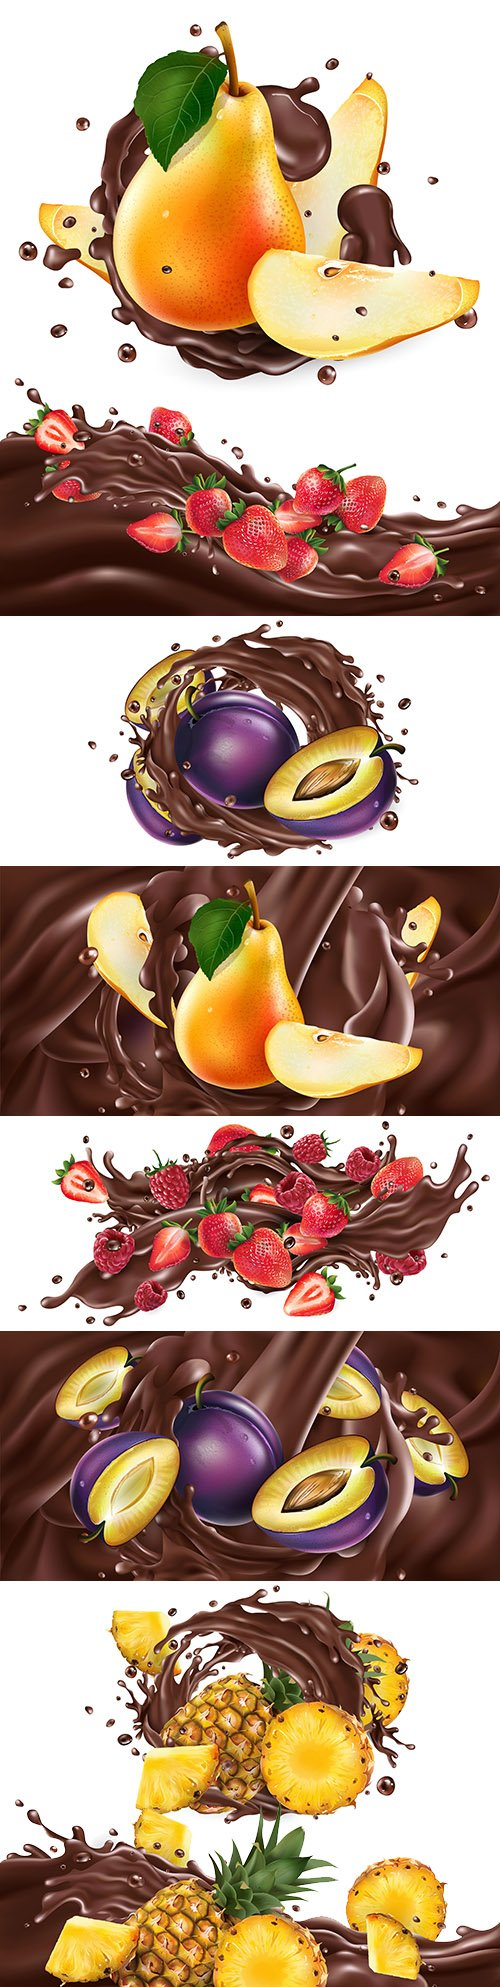 Whole and chopped fruit in chocolate splash realistic illustrations